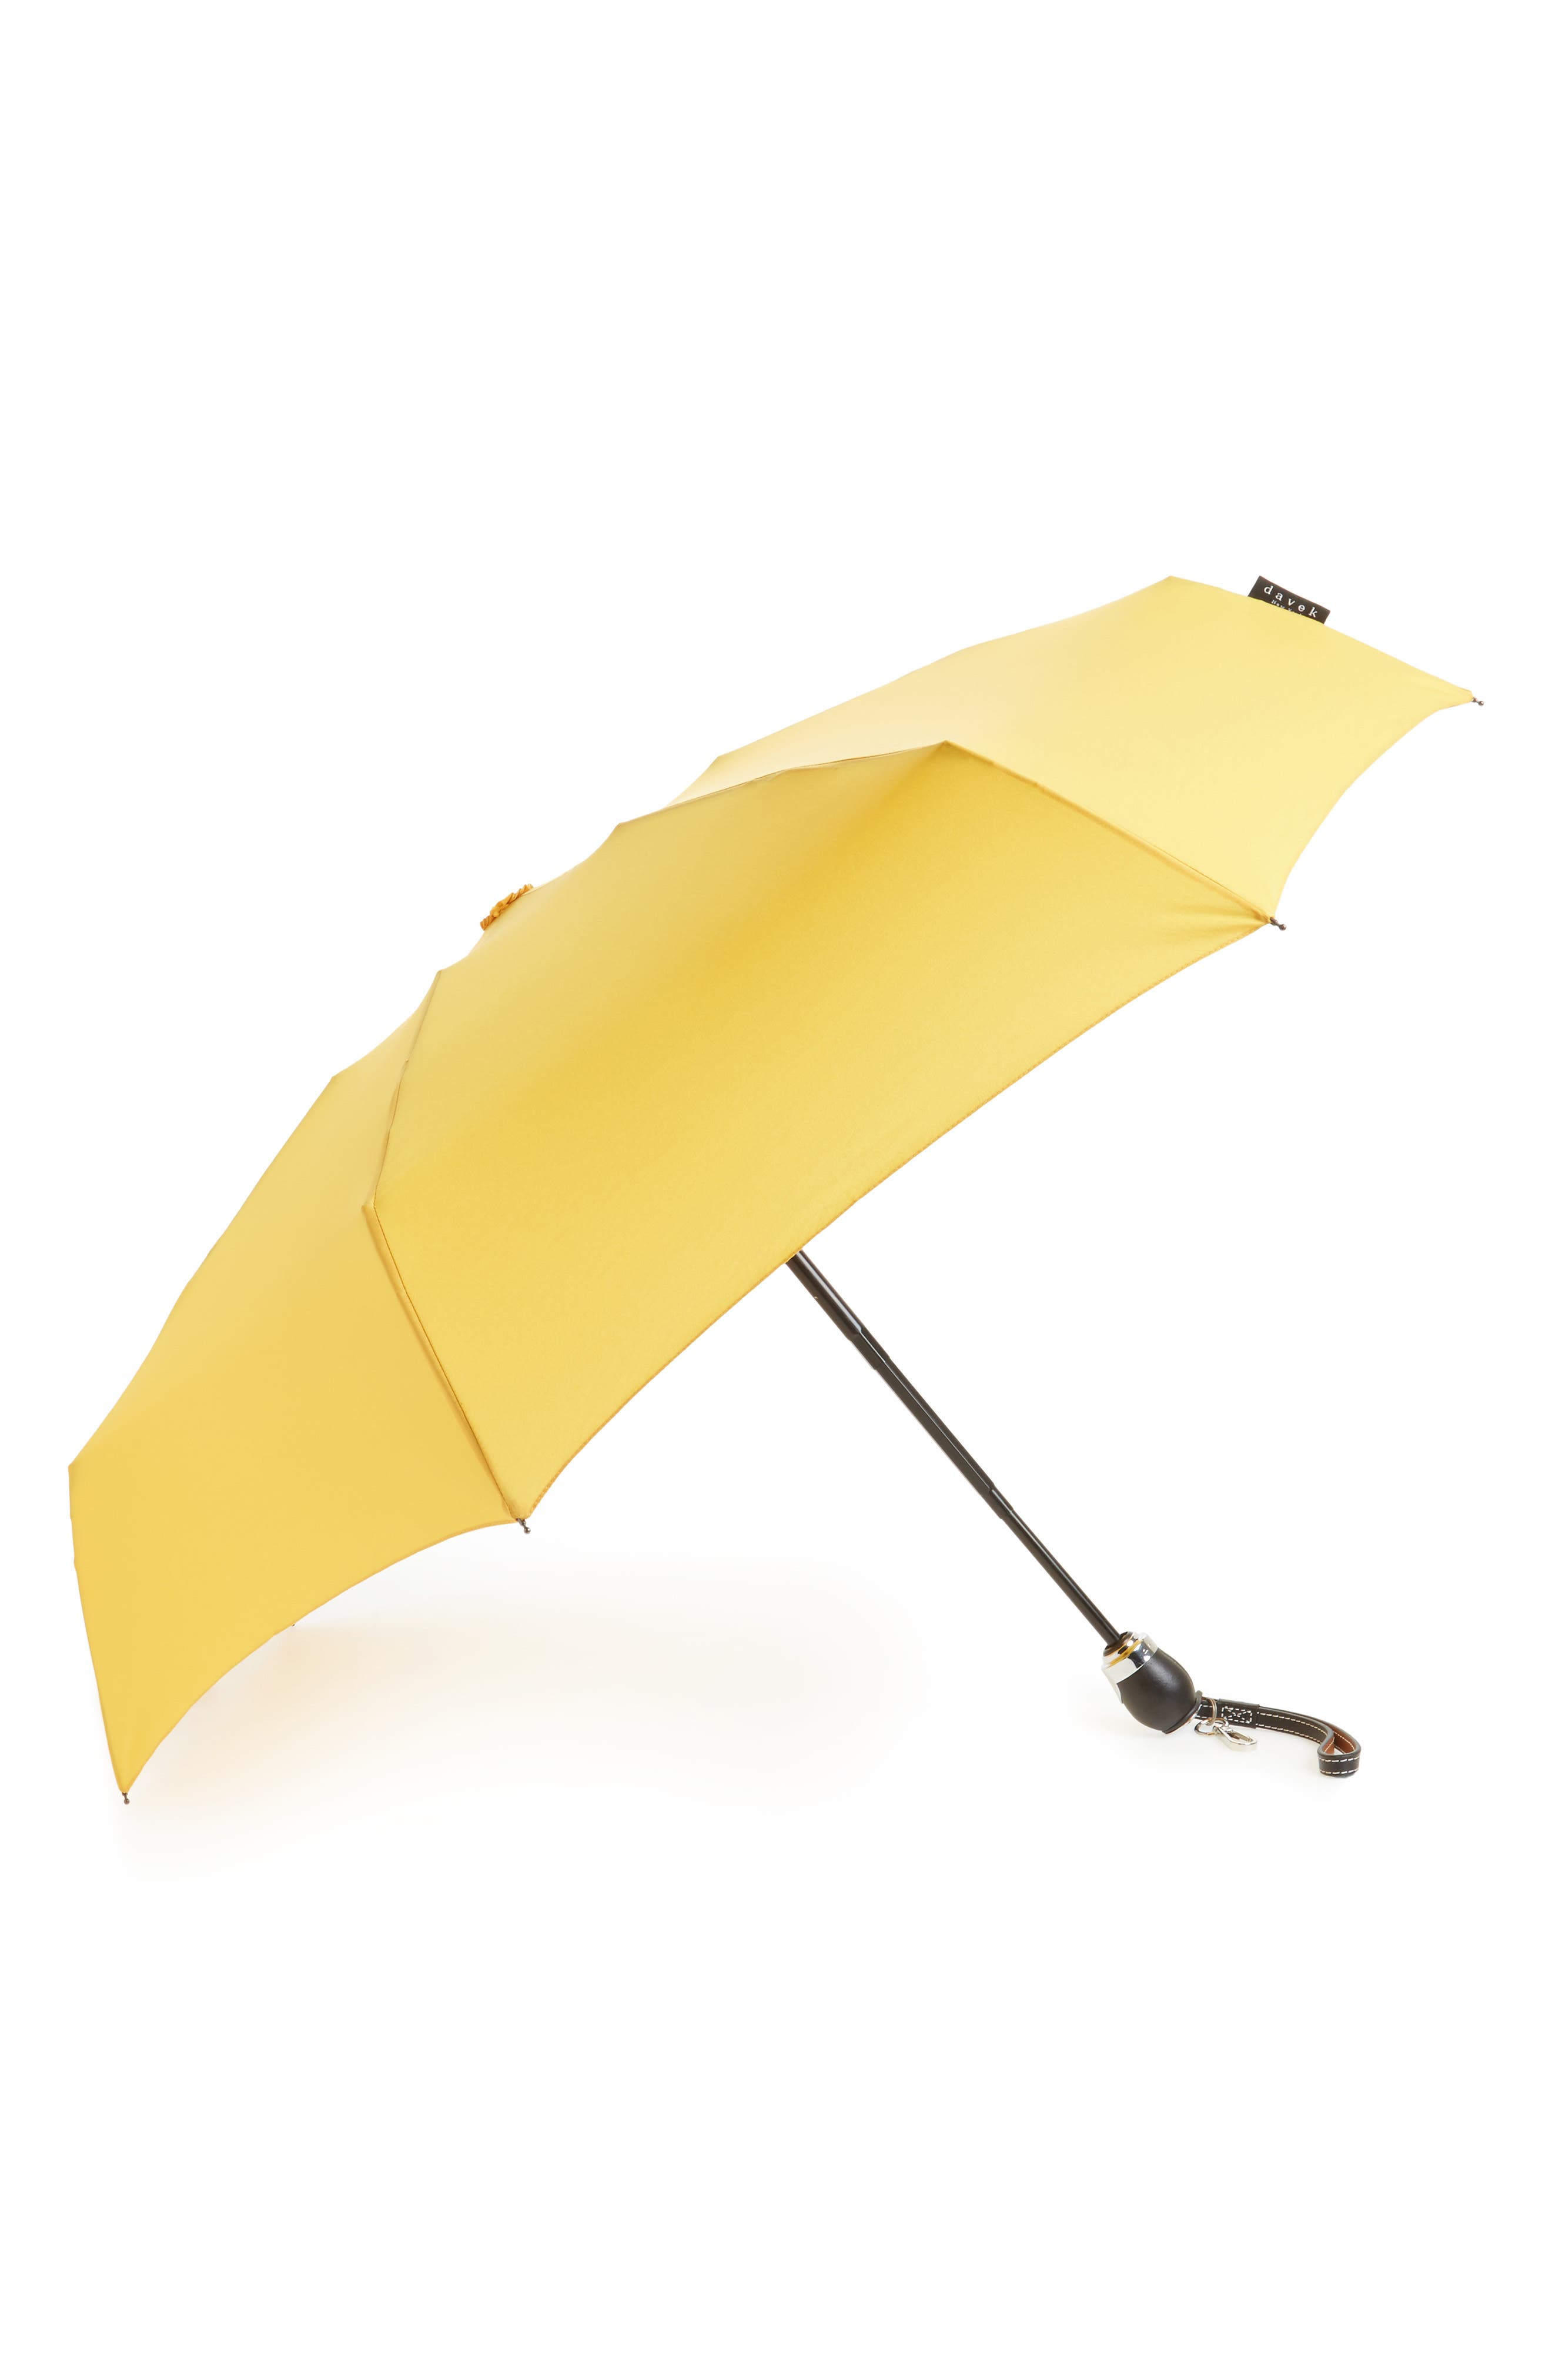 DAVEK Traveler Umbrella